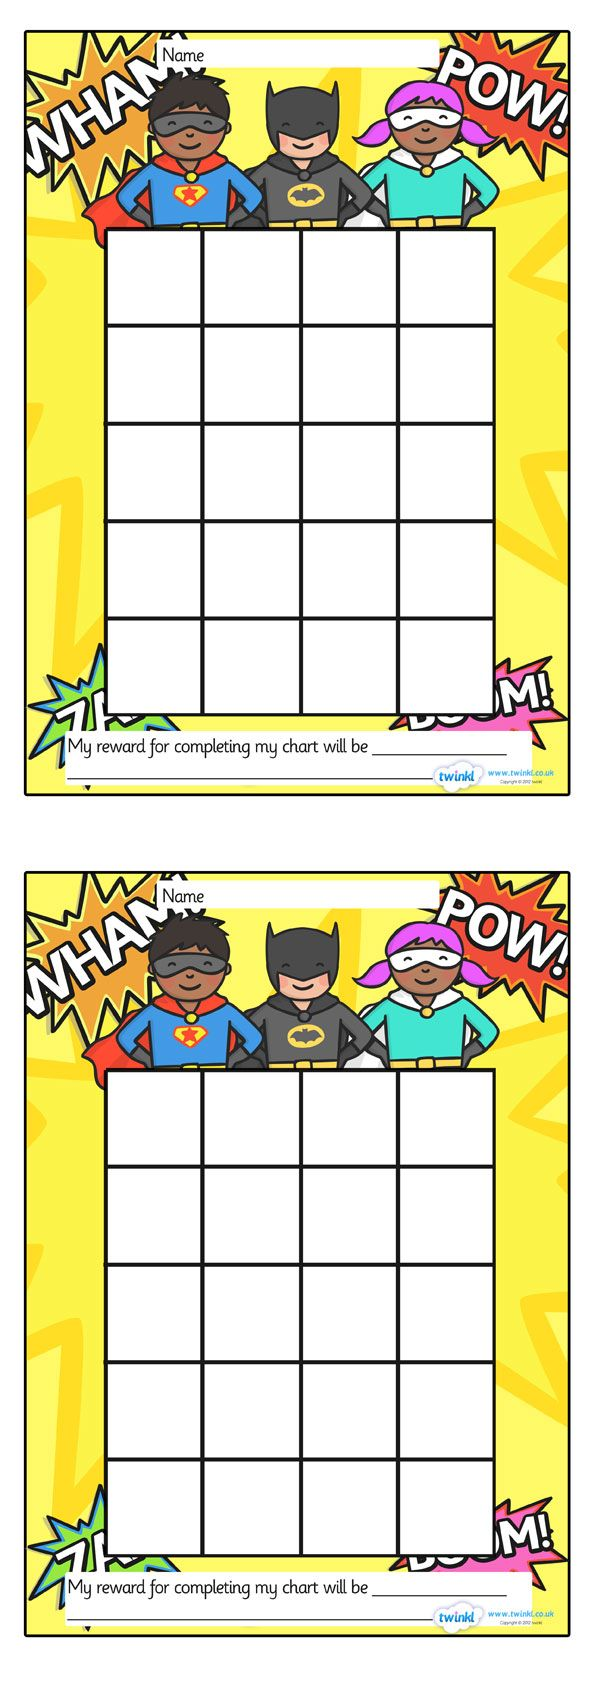 Twinkl Resources >> Superhero Sticker/Stamp Reward Chart  >> Classroom printables for Pre-School, Kindergarten, Elementary School and beyond! Rewards, Sticker Charts, Class Management, Behavior